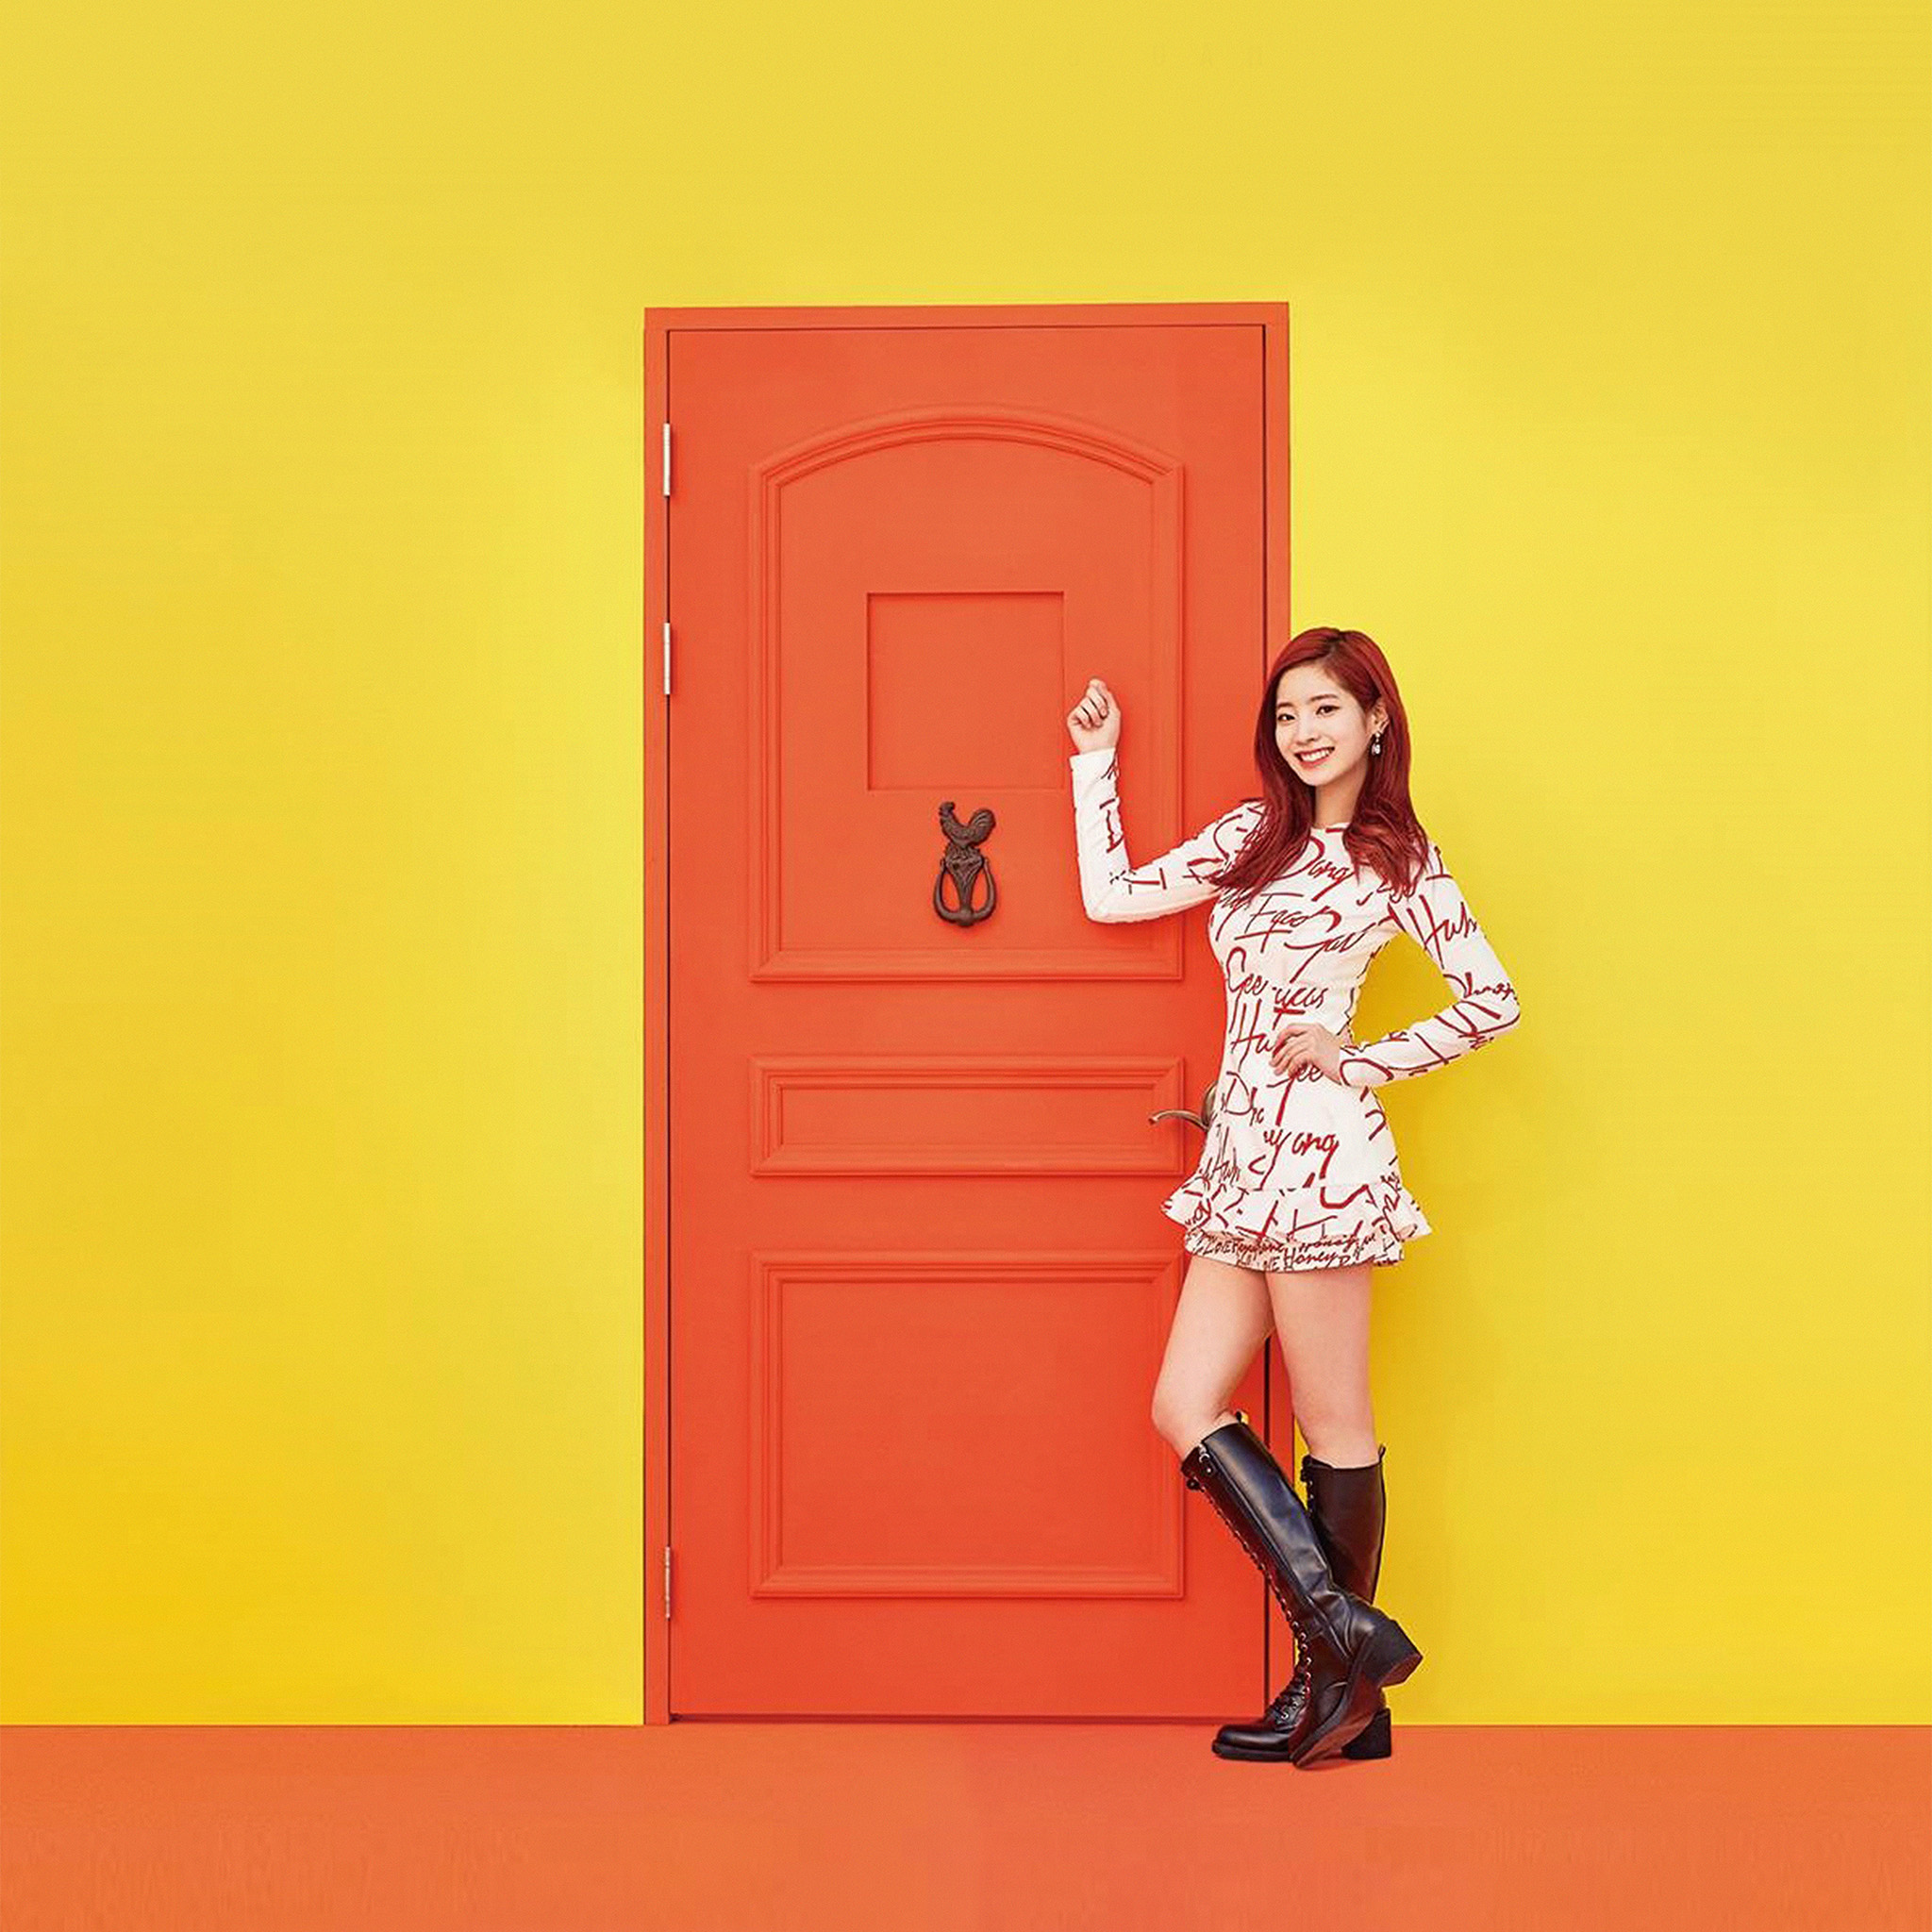 Galaxy S4 Fall Wallpaper Papers Co Android Wallpaper Hm35 Yellow Girl Kpop